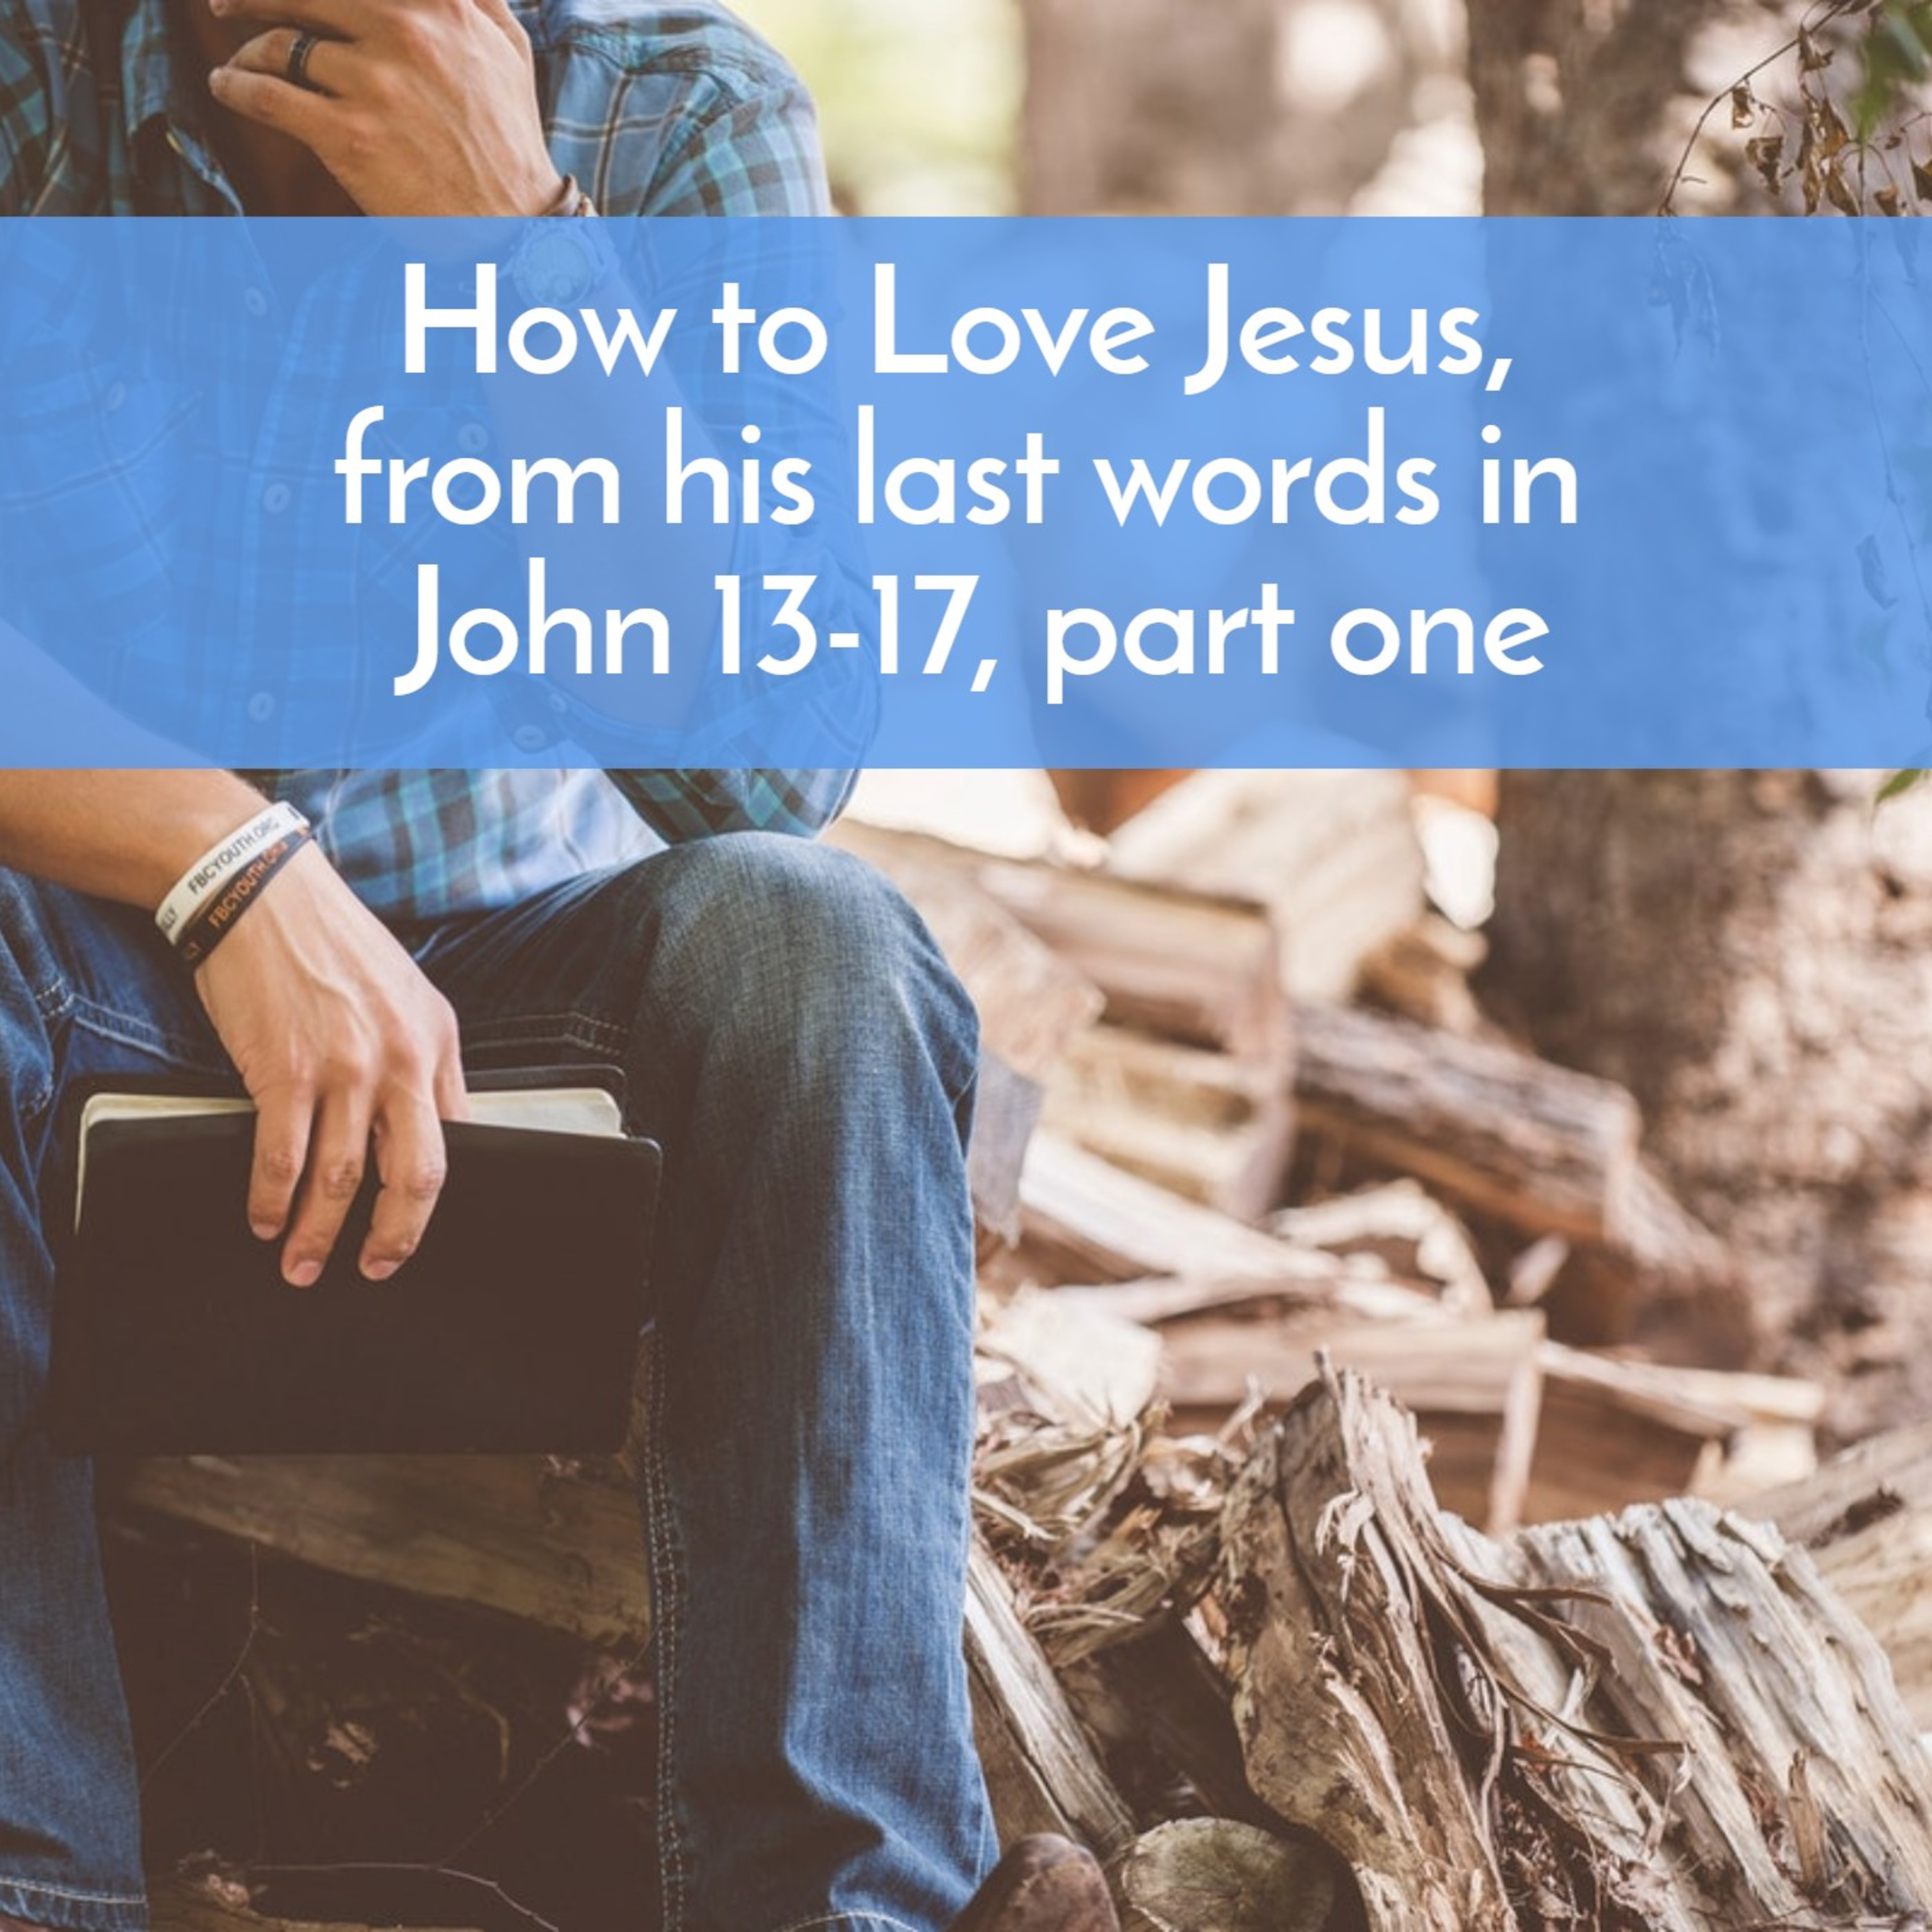 How to love Jesus, how his last words in John 13-17 can help us